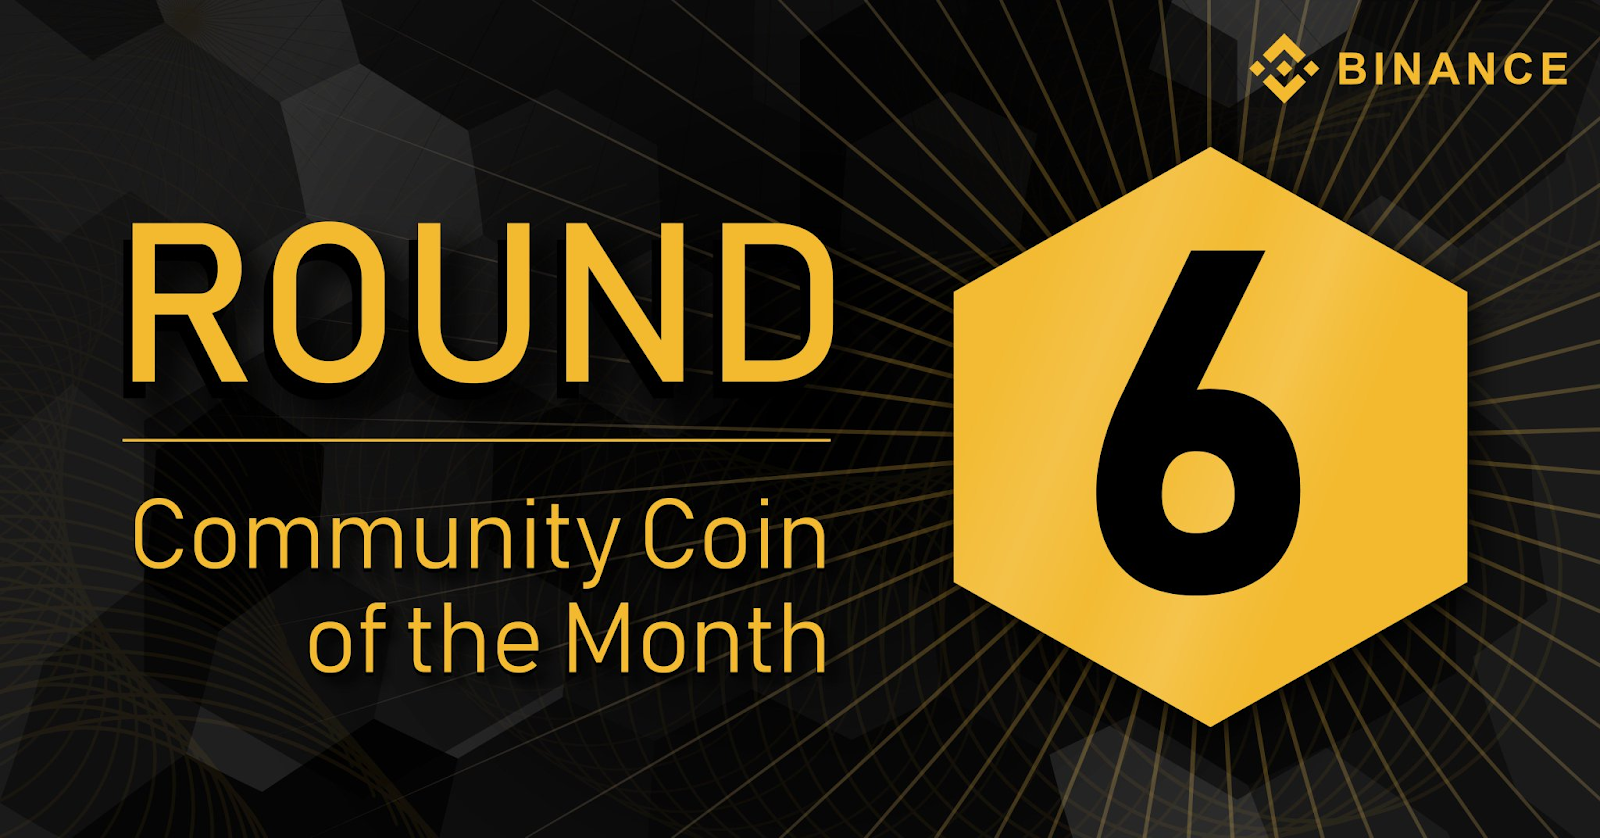 Community Coin of the Month